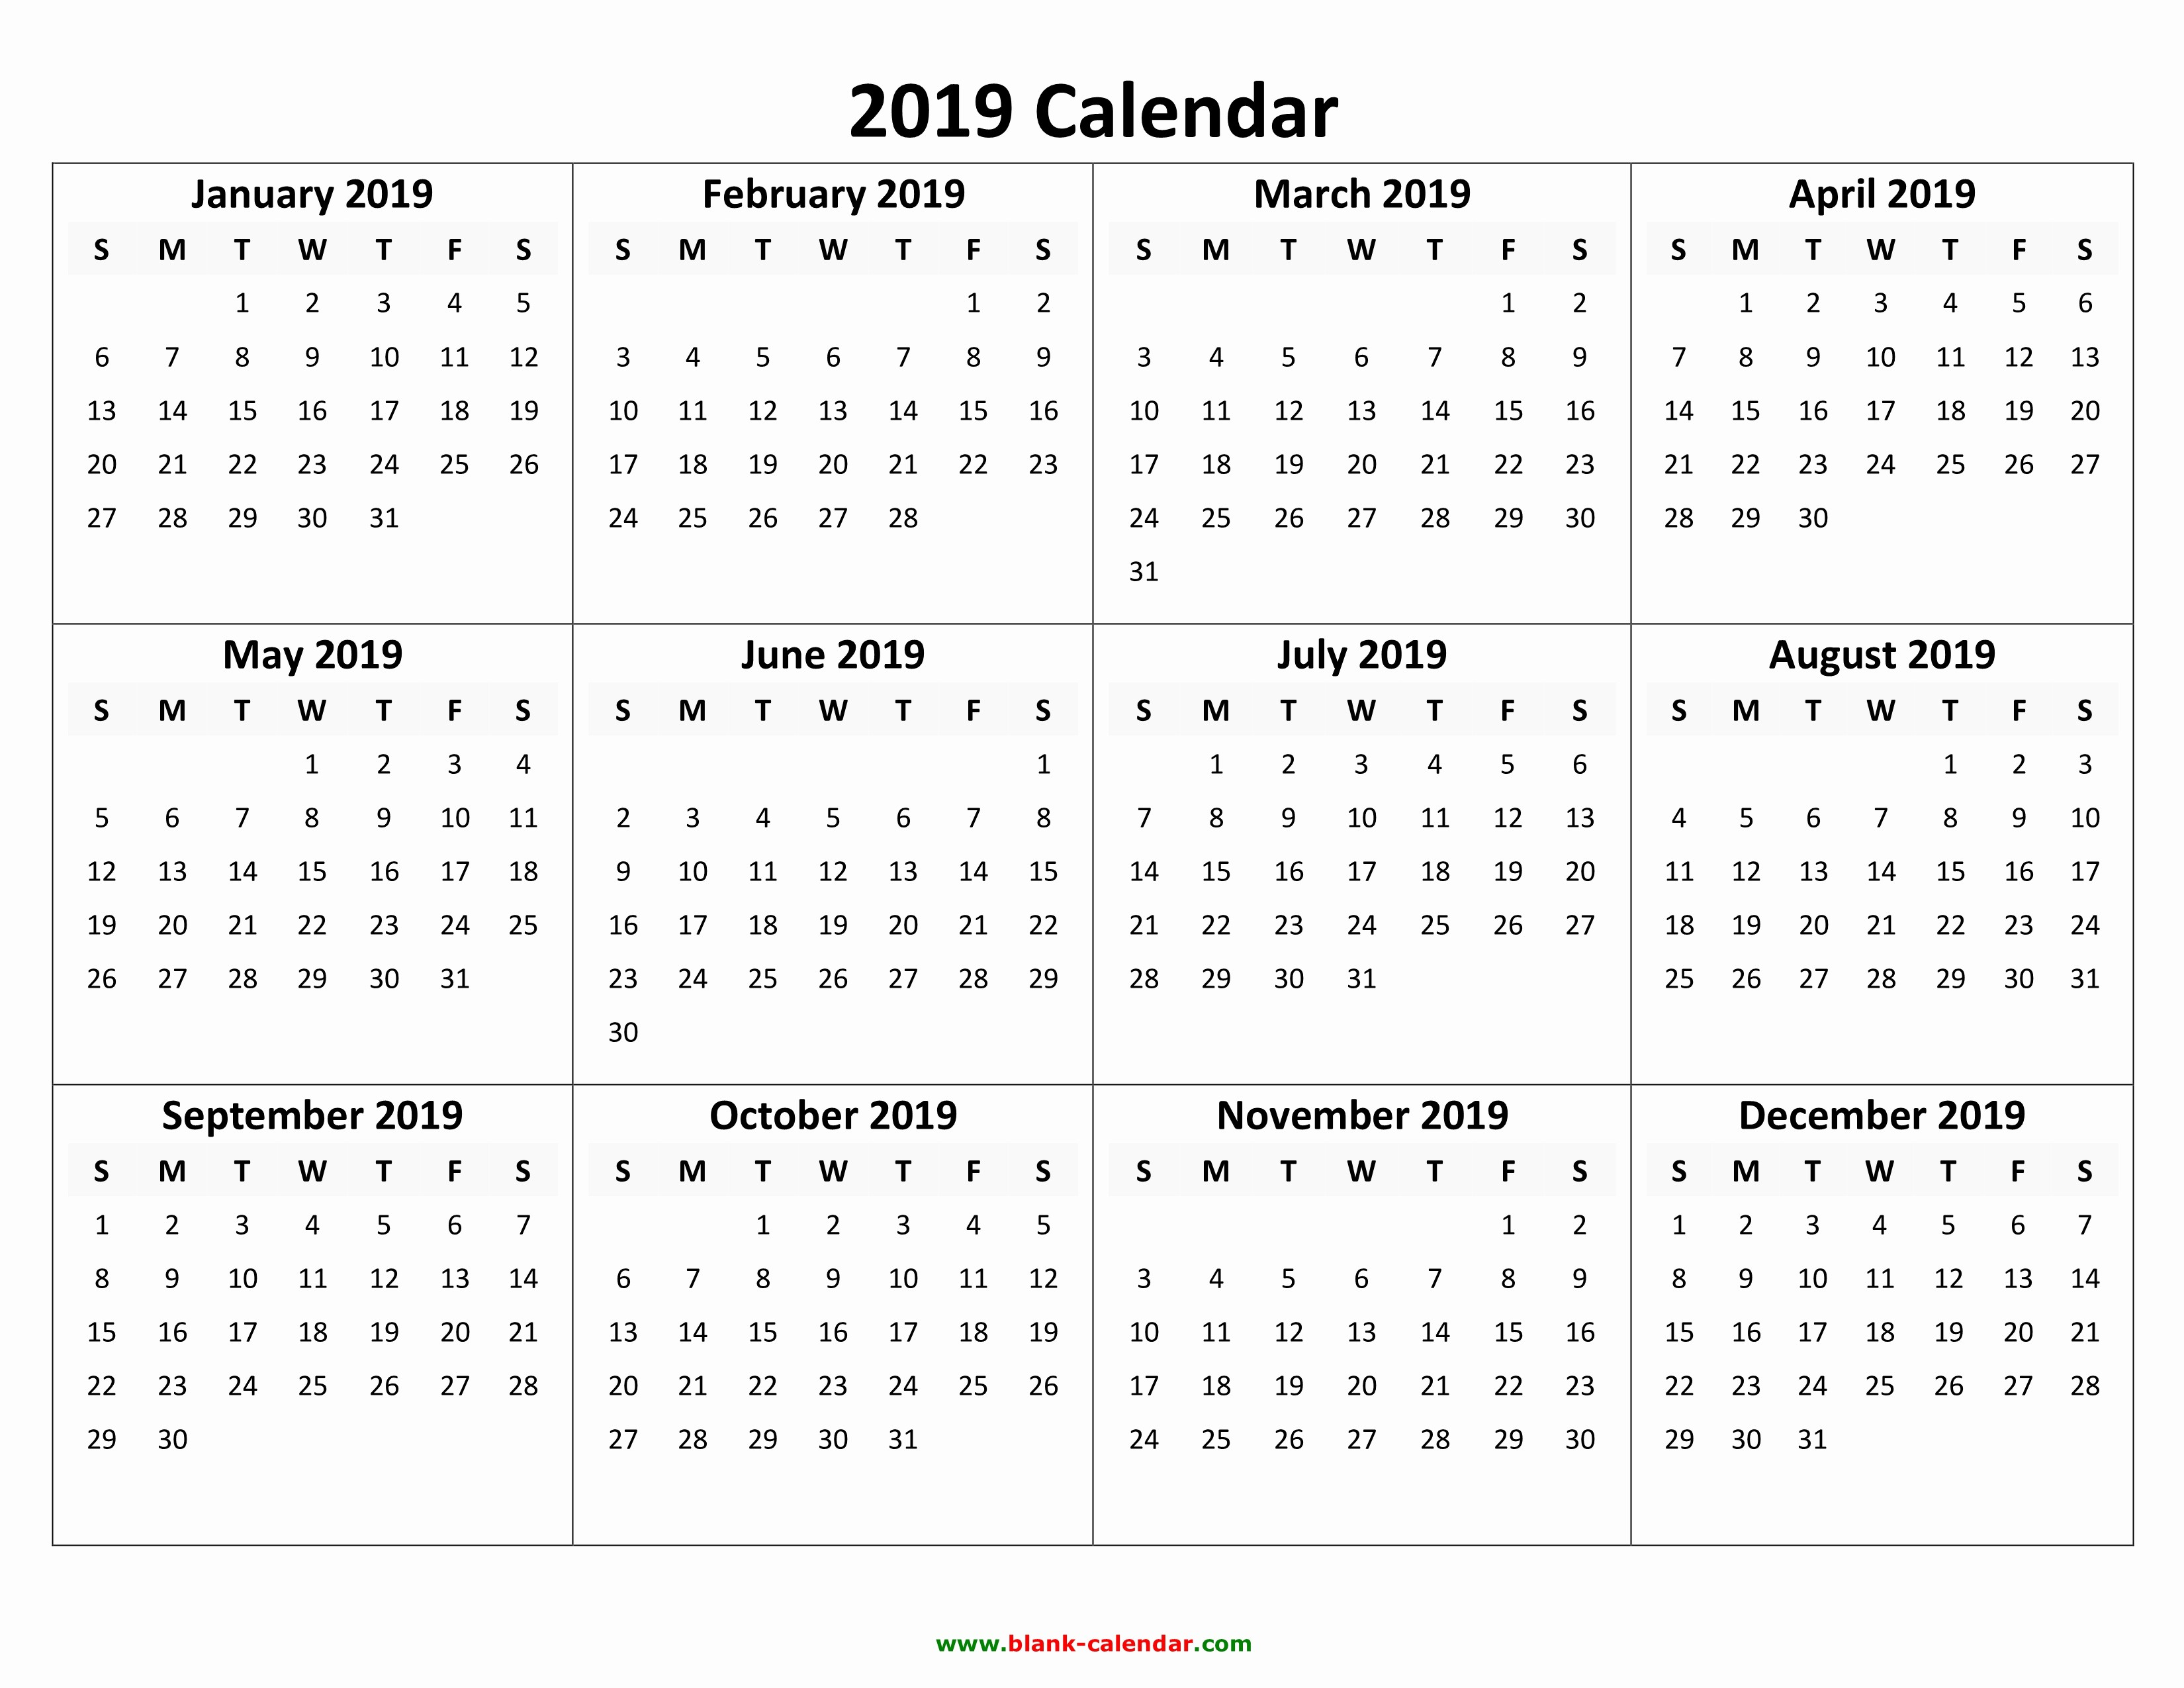 March Calendar 2019 Recientes Documenting Employee Behavior Template Beautiful Write Up at Work Of March Calendar 2019 Mejores Y Más Novedosos 30 Day Calendar Template Awesome Calendar 1 April 2018 to 31 March